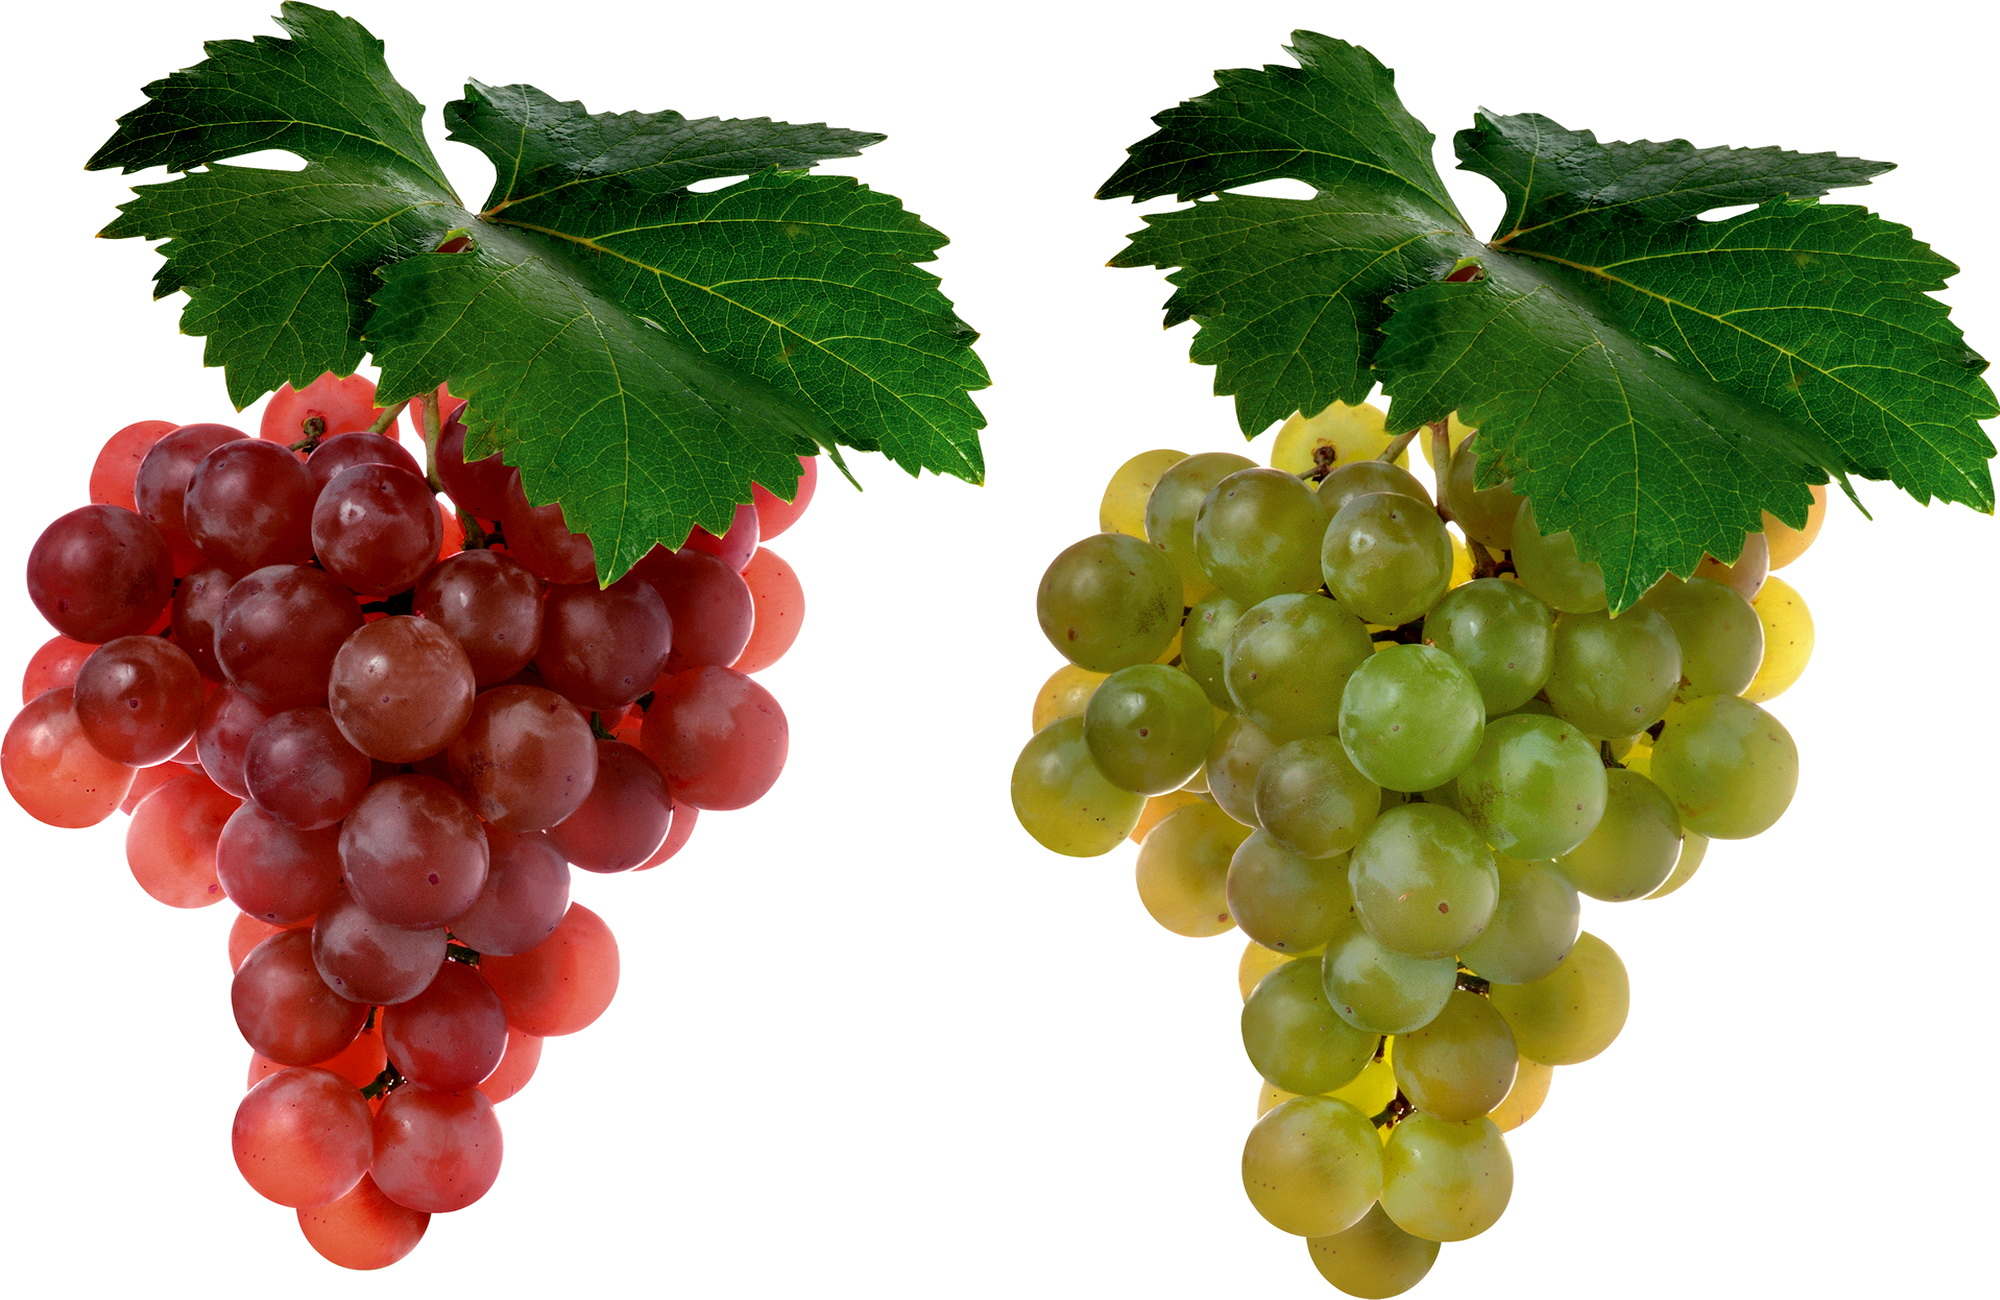 Grapes Full HD Wallpaper and Background Image | 2000x1300 | ID:249487 for Grapes Animated  173lyp